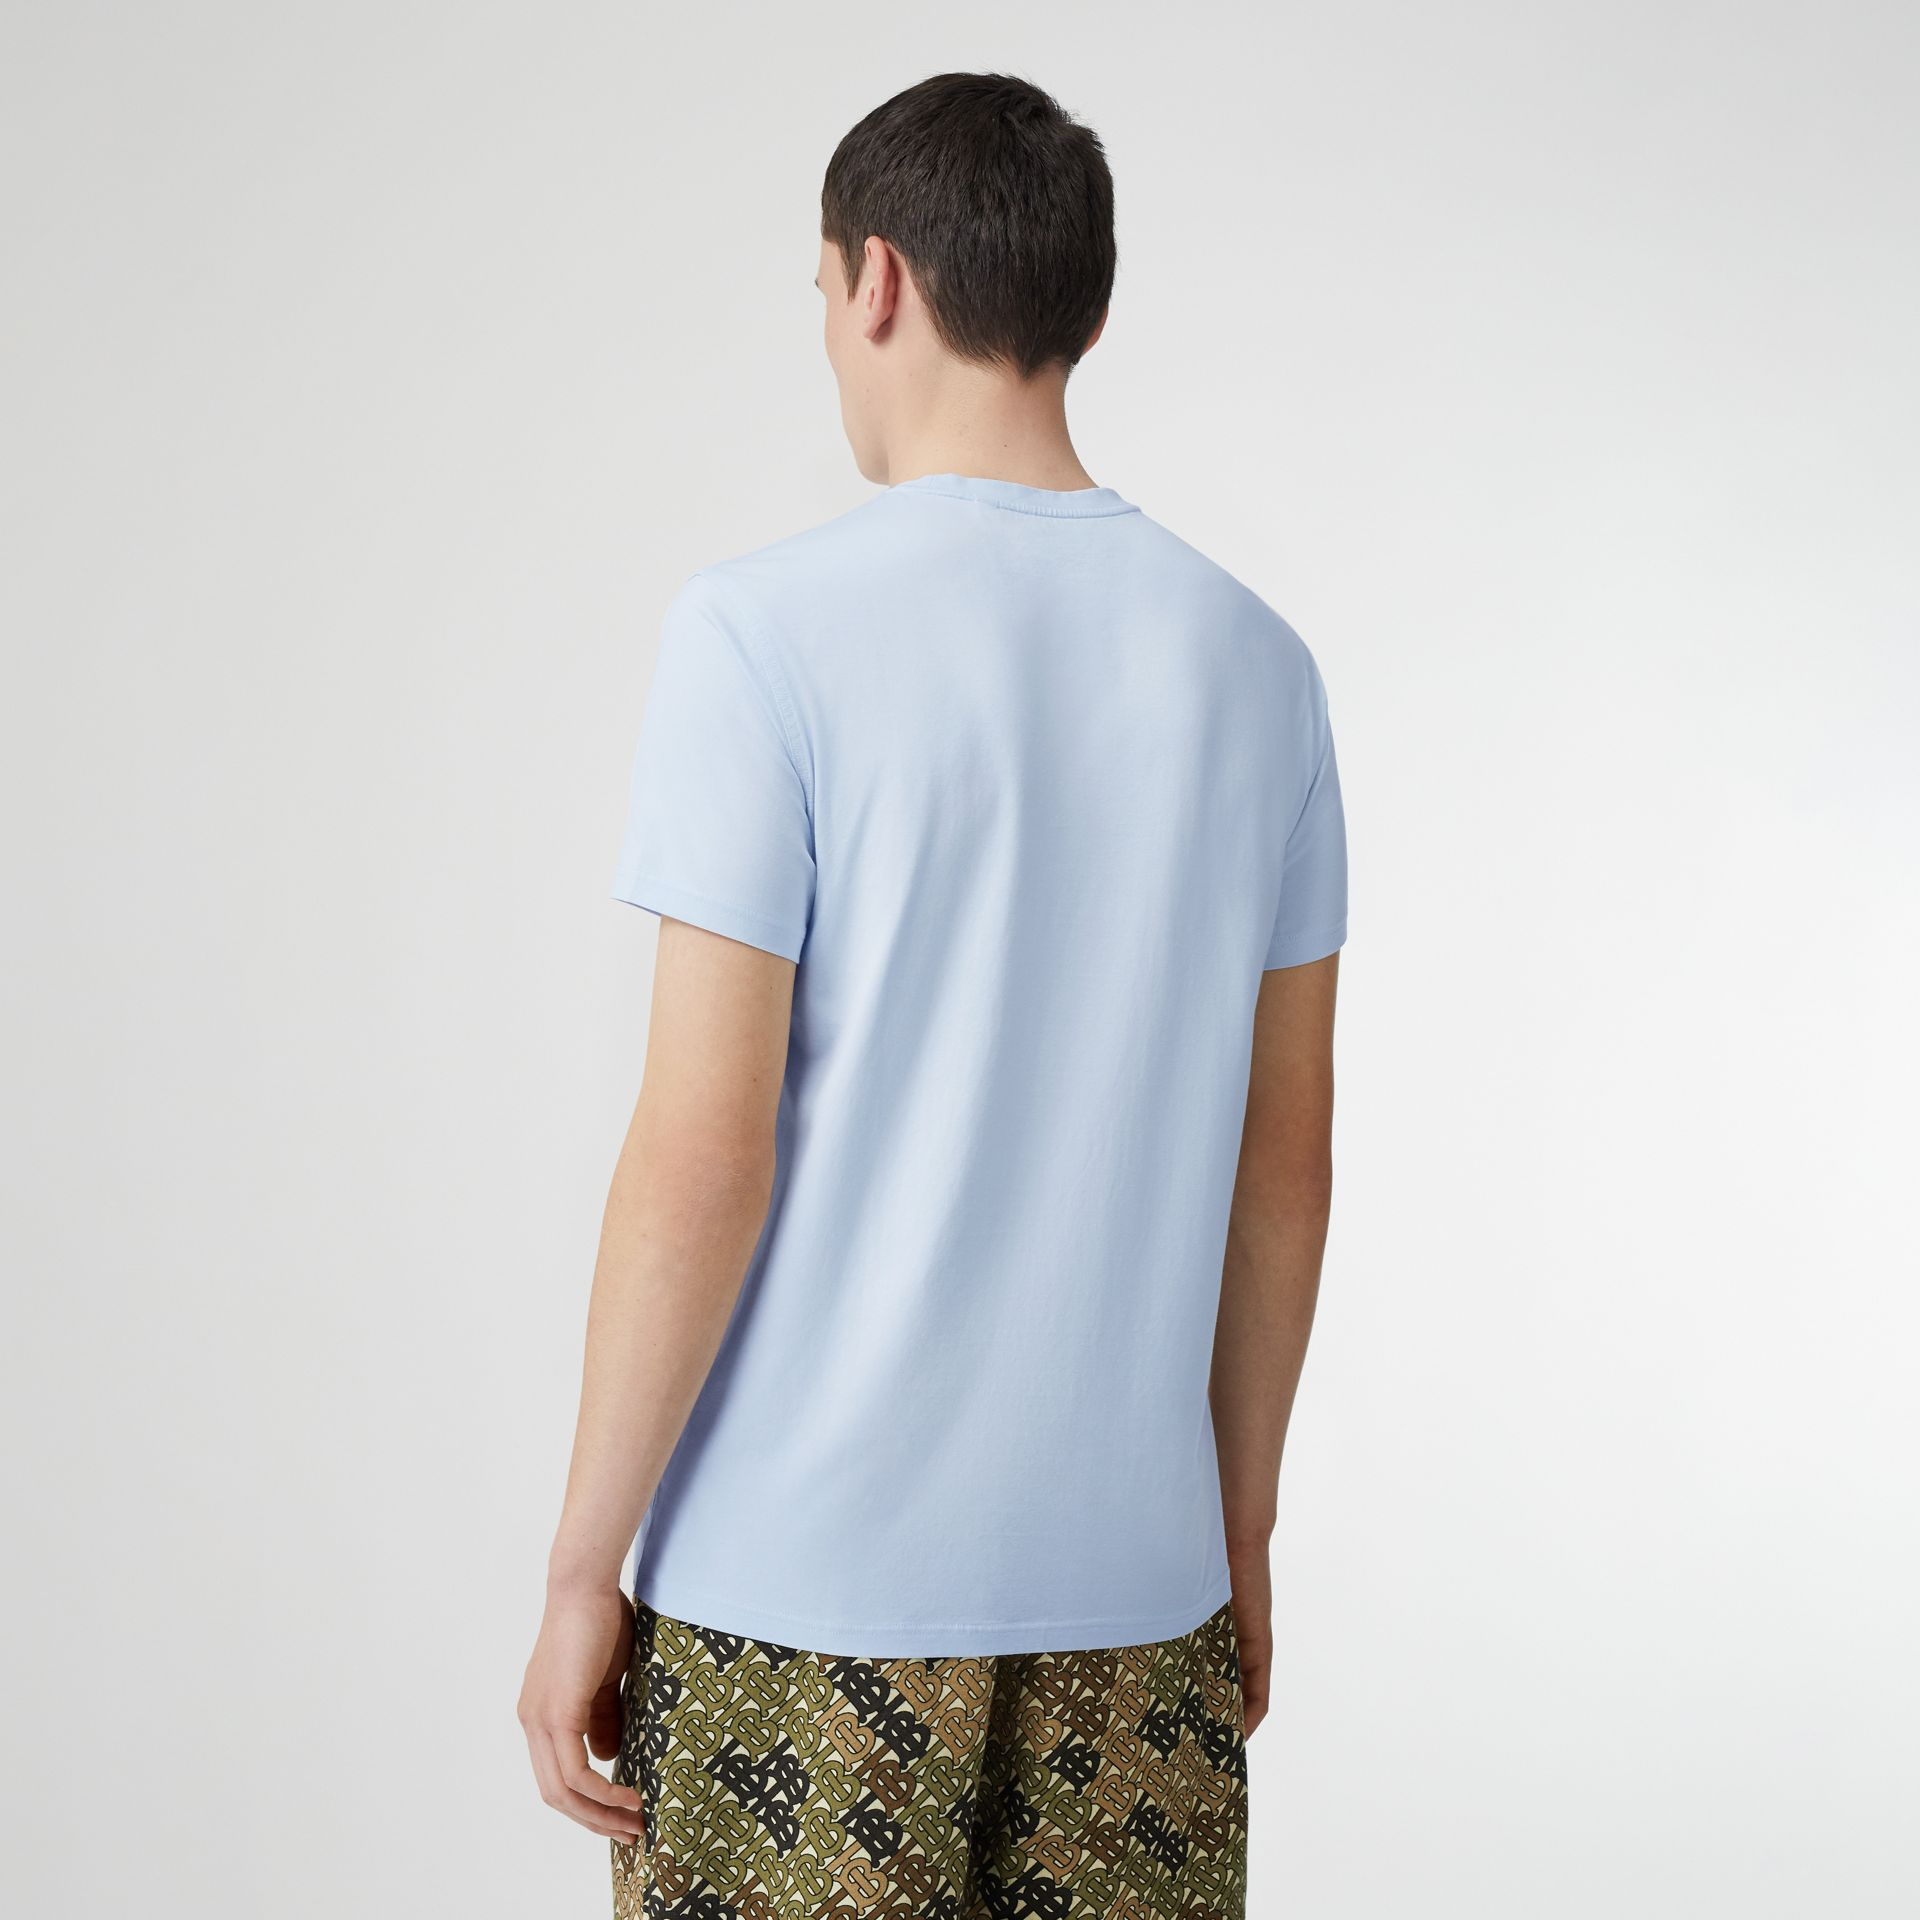 Monogram Motif Cotton T-shirt in Pale Blue - Men | Burberry United States - gallery image 2